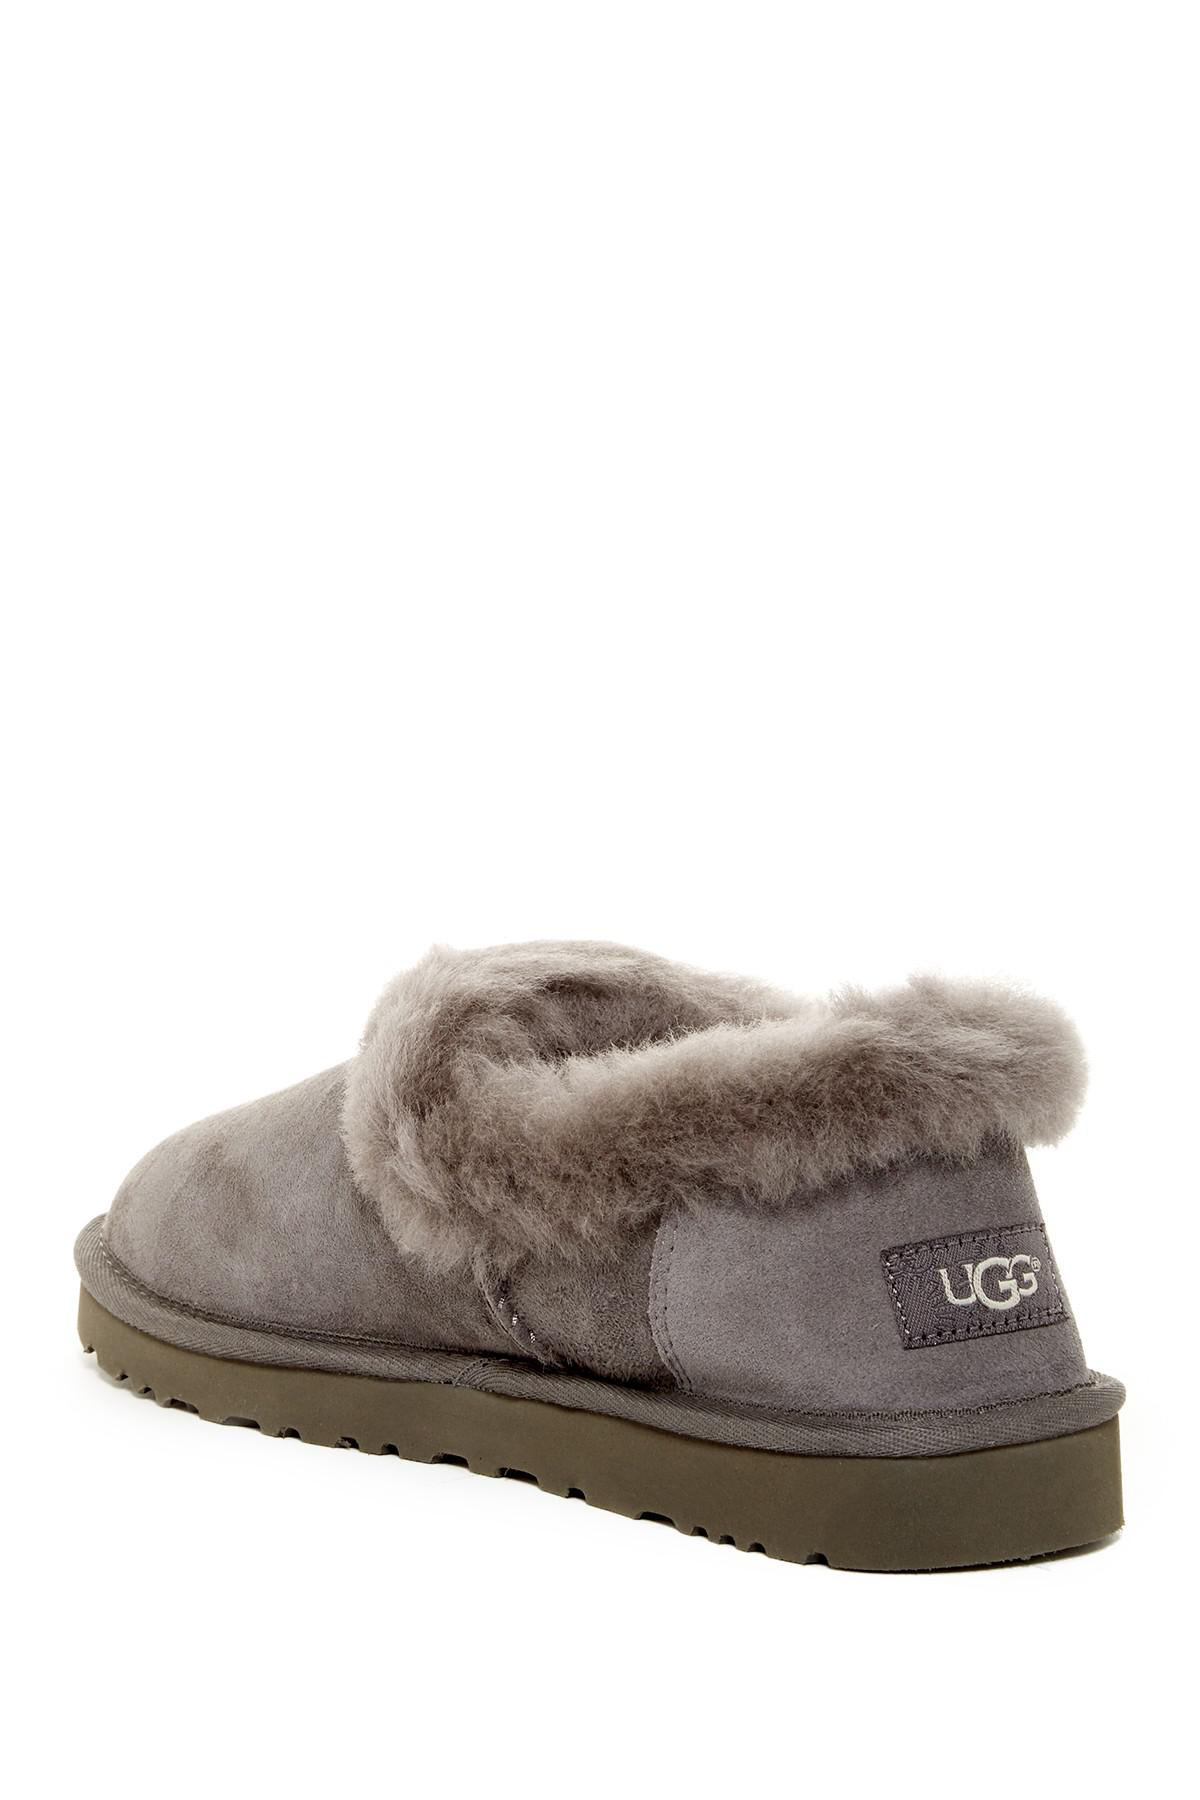 bafbf29c3d9 Lyst - UGG Nita Genuine Shearling Trim Slipper in Gray